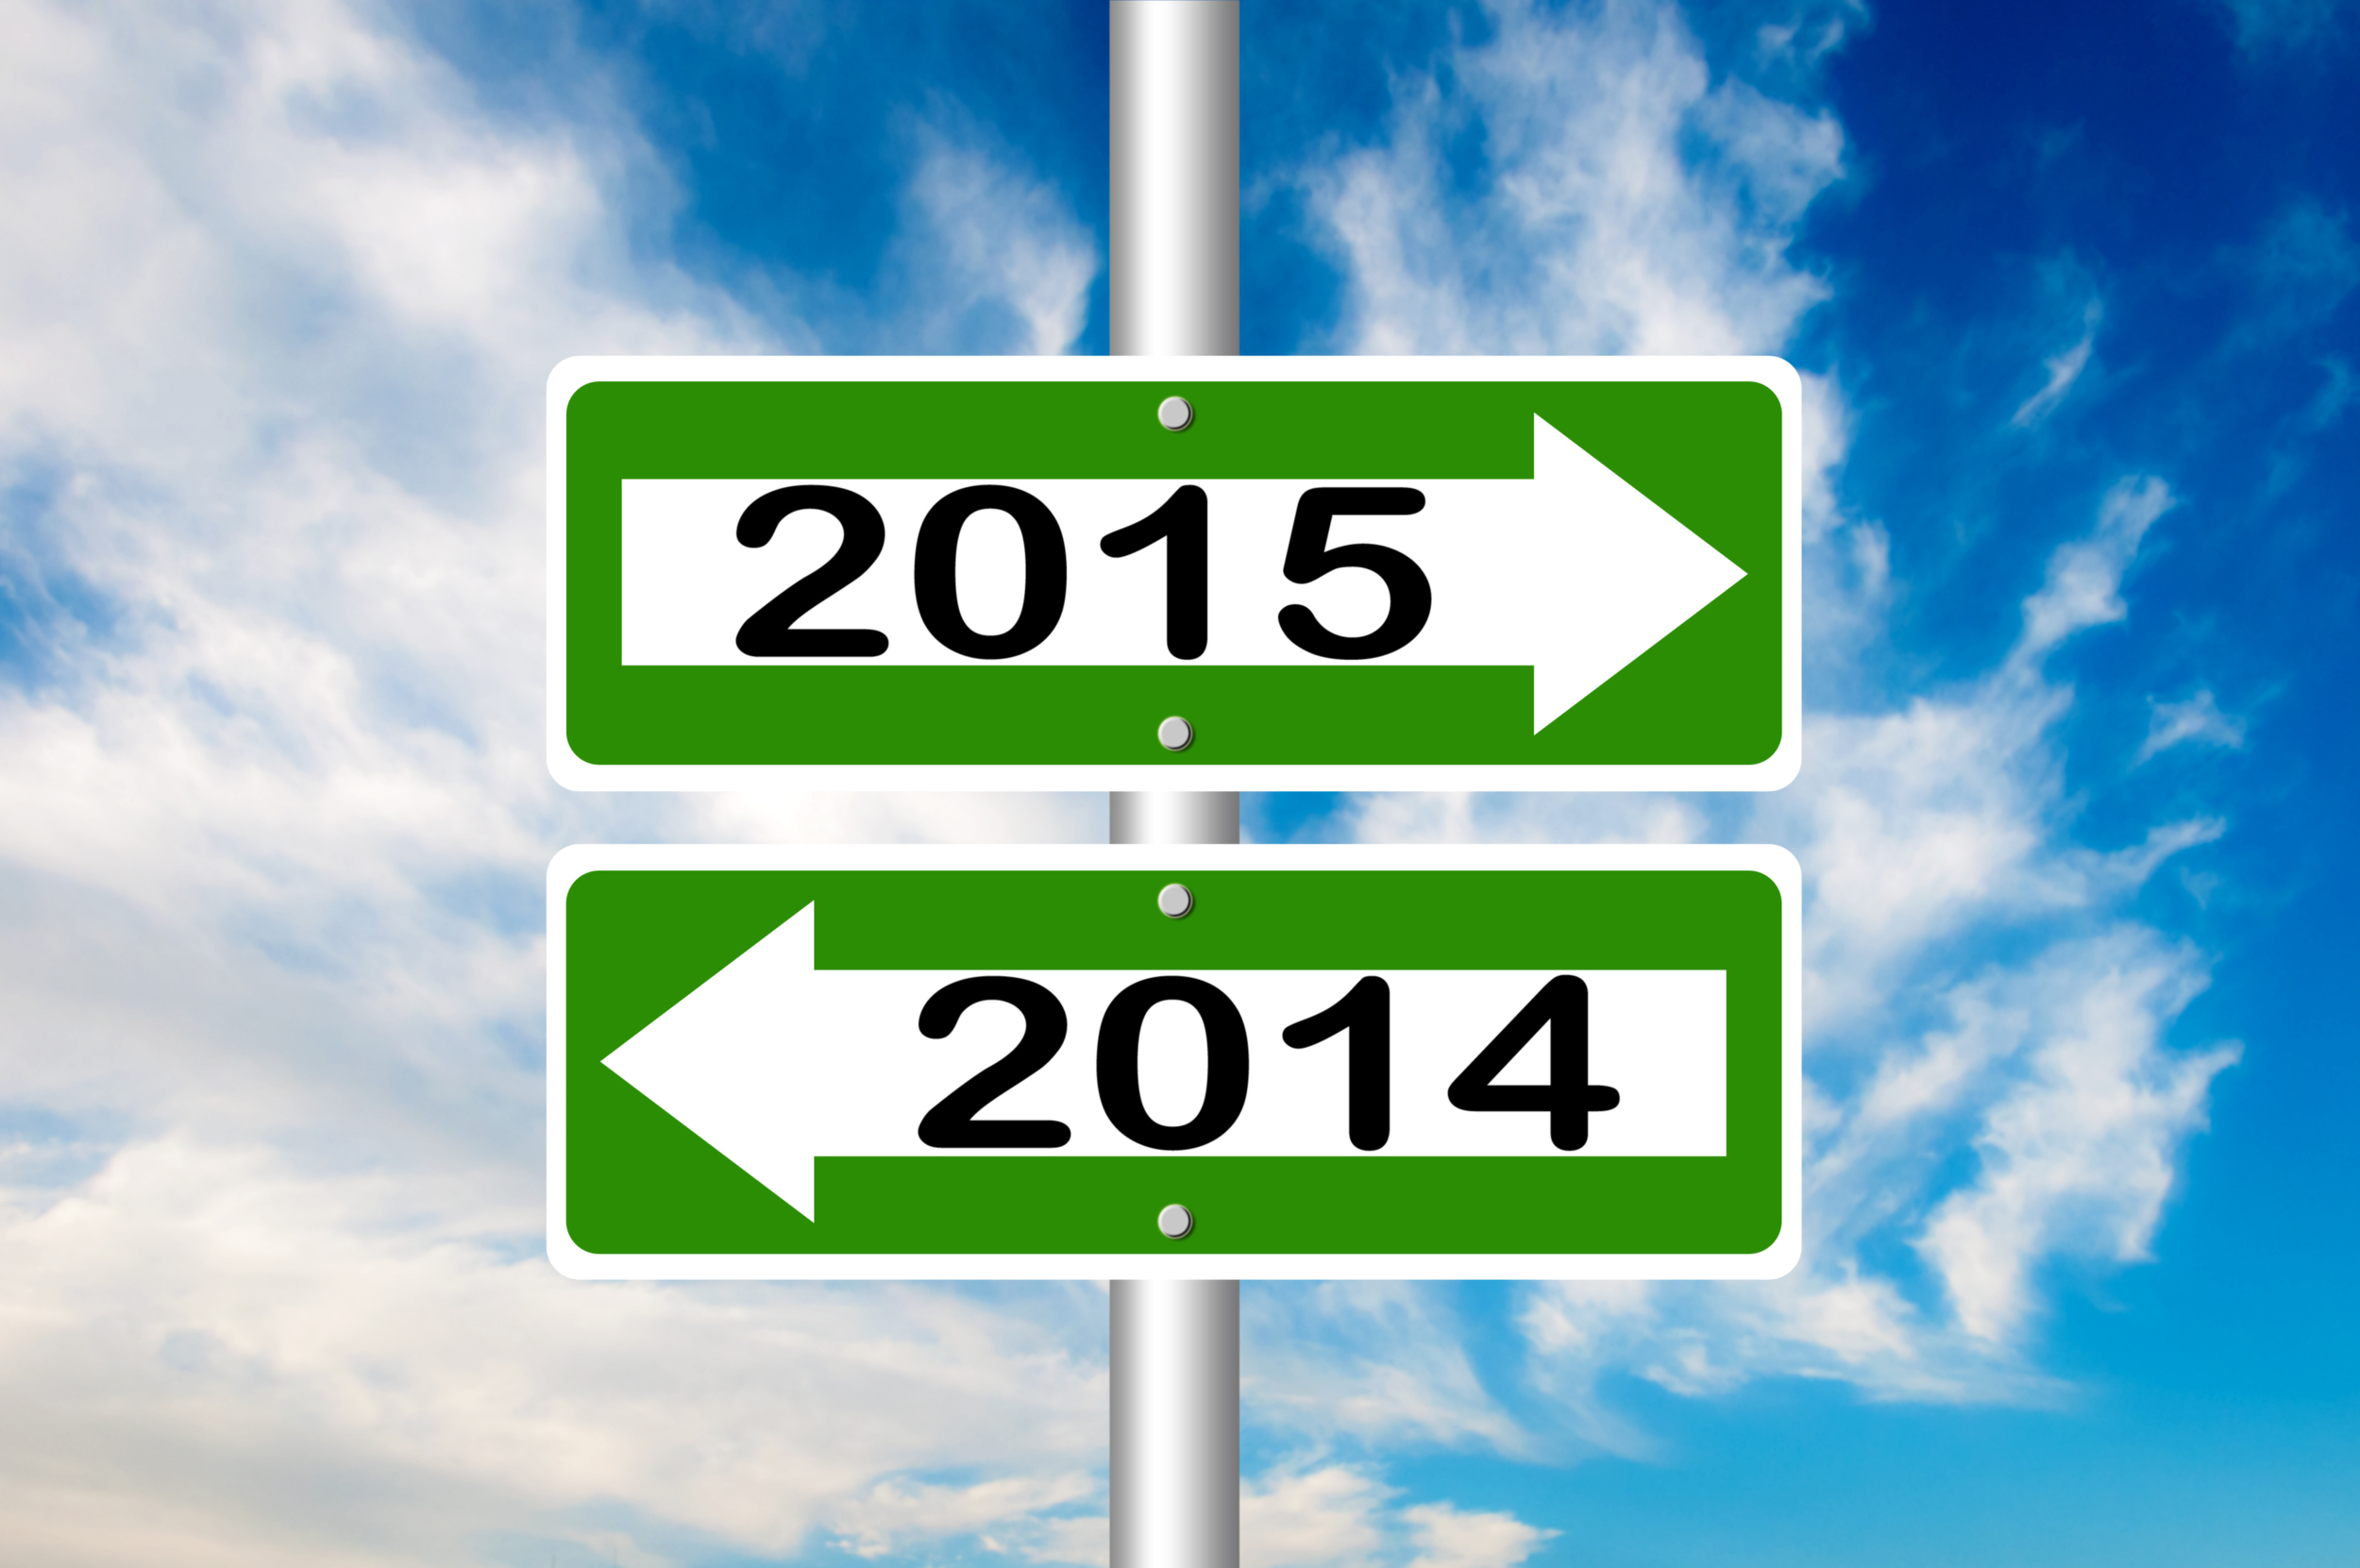 Leave 2014 (and checks!) behind. Make B2B card payments a priority in2015.